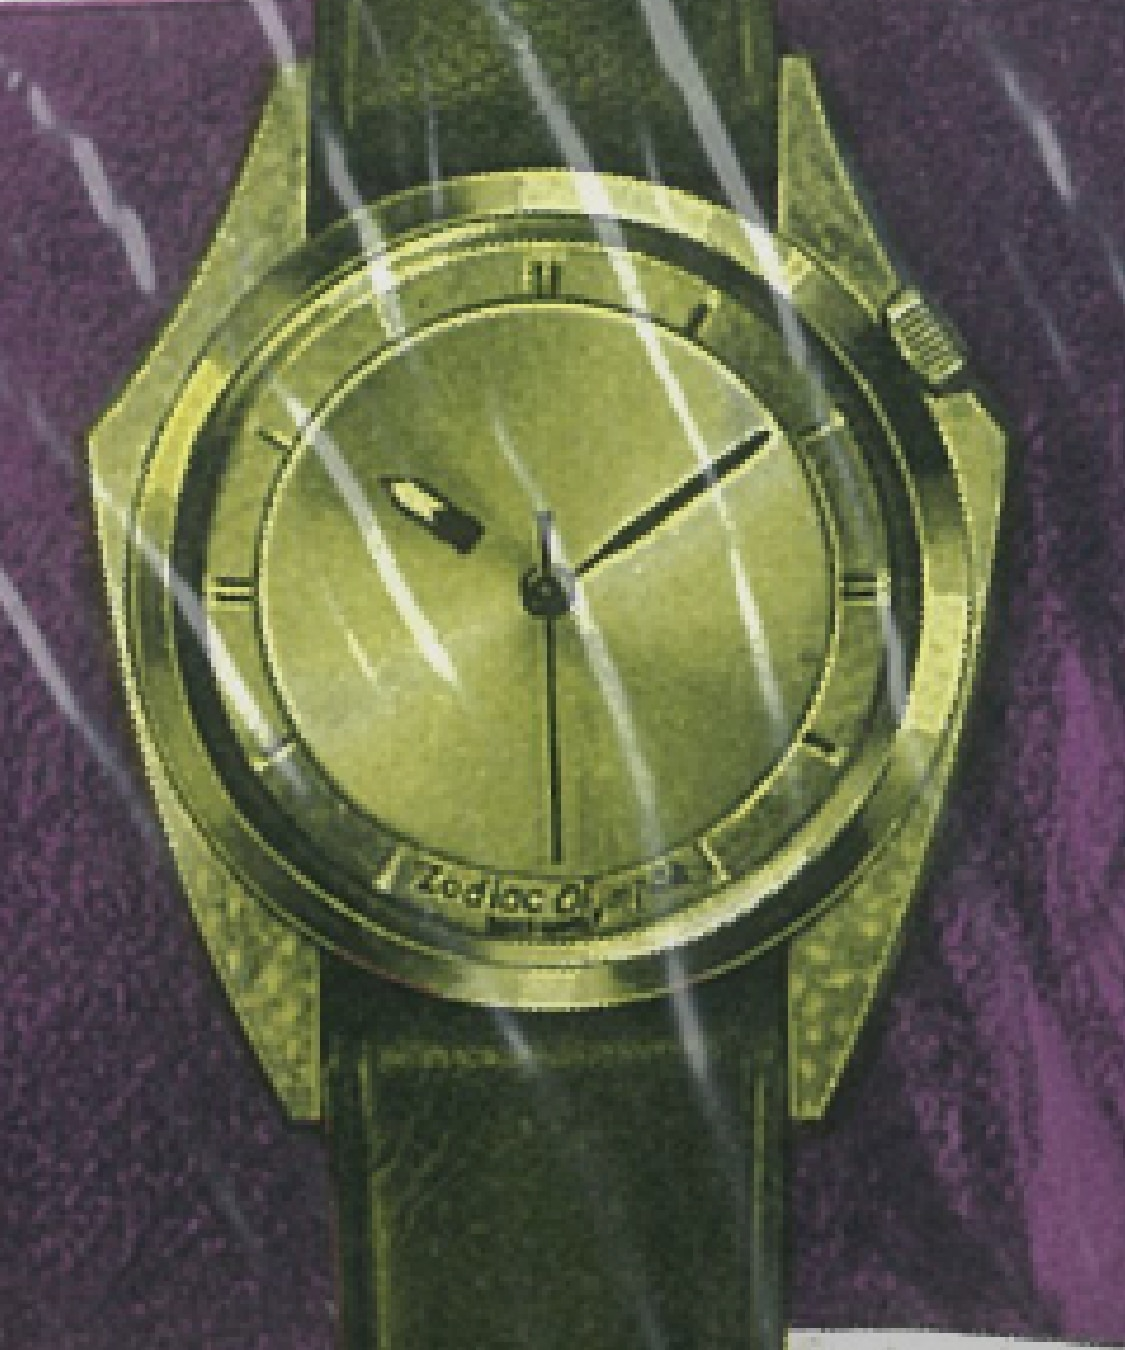 Purple and gold pop art style image, with a close up image of a face and a Zodiac Olympos watch.